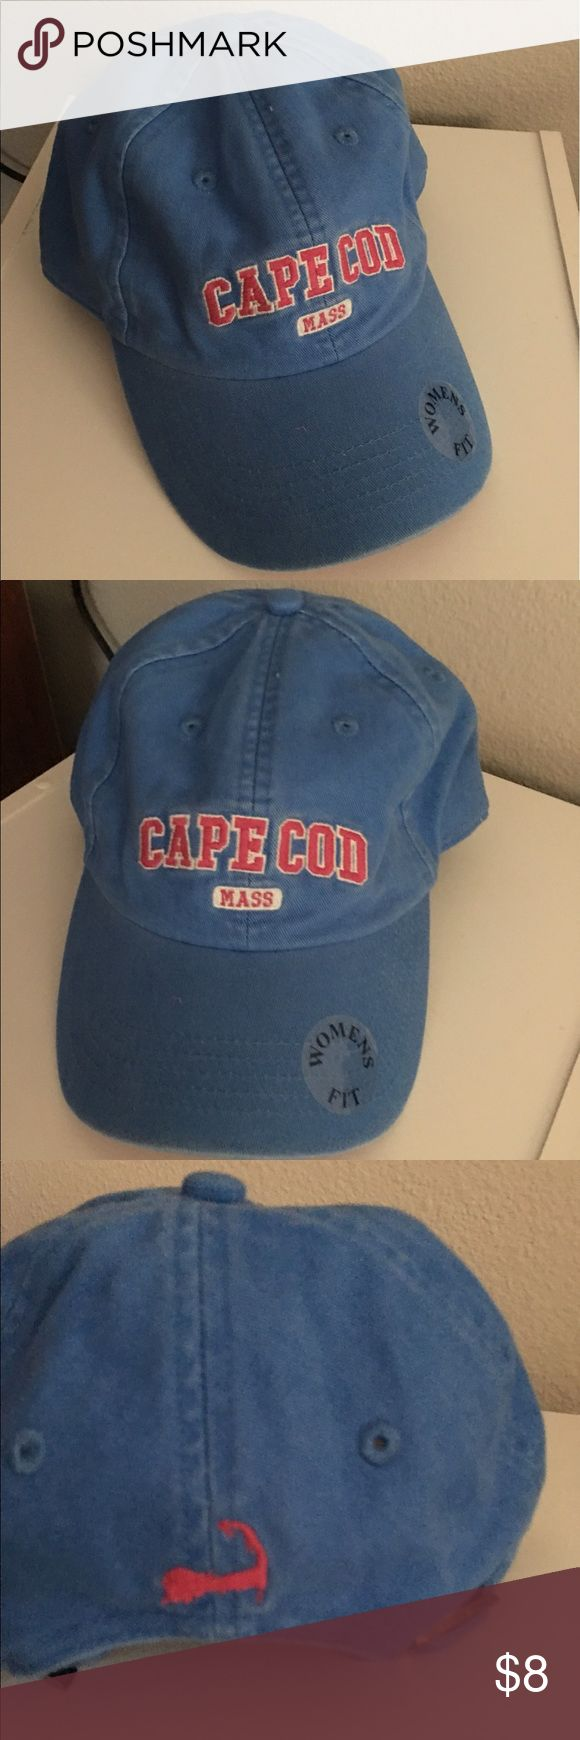 Ladies Cape Cod hat. NWOT Super cute ladies Cape Cod hat. NWOT. Adjustable. Never worn. No trades. Make me an offer. Accessories Hats